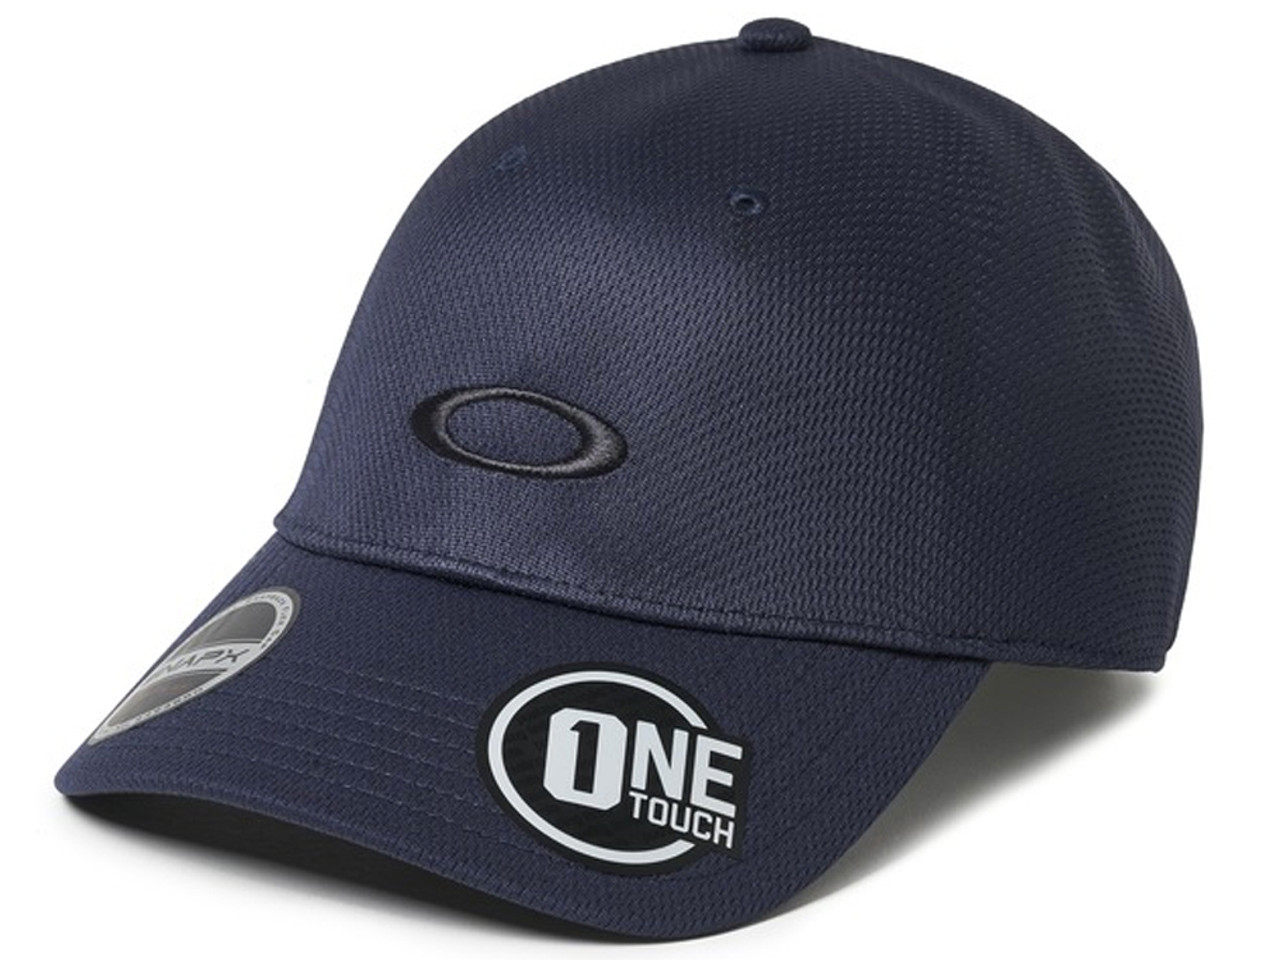 Oakley One Touch Cap - Fathom - Mens - Polyester For Sale  0e002dd4982a